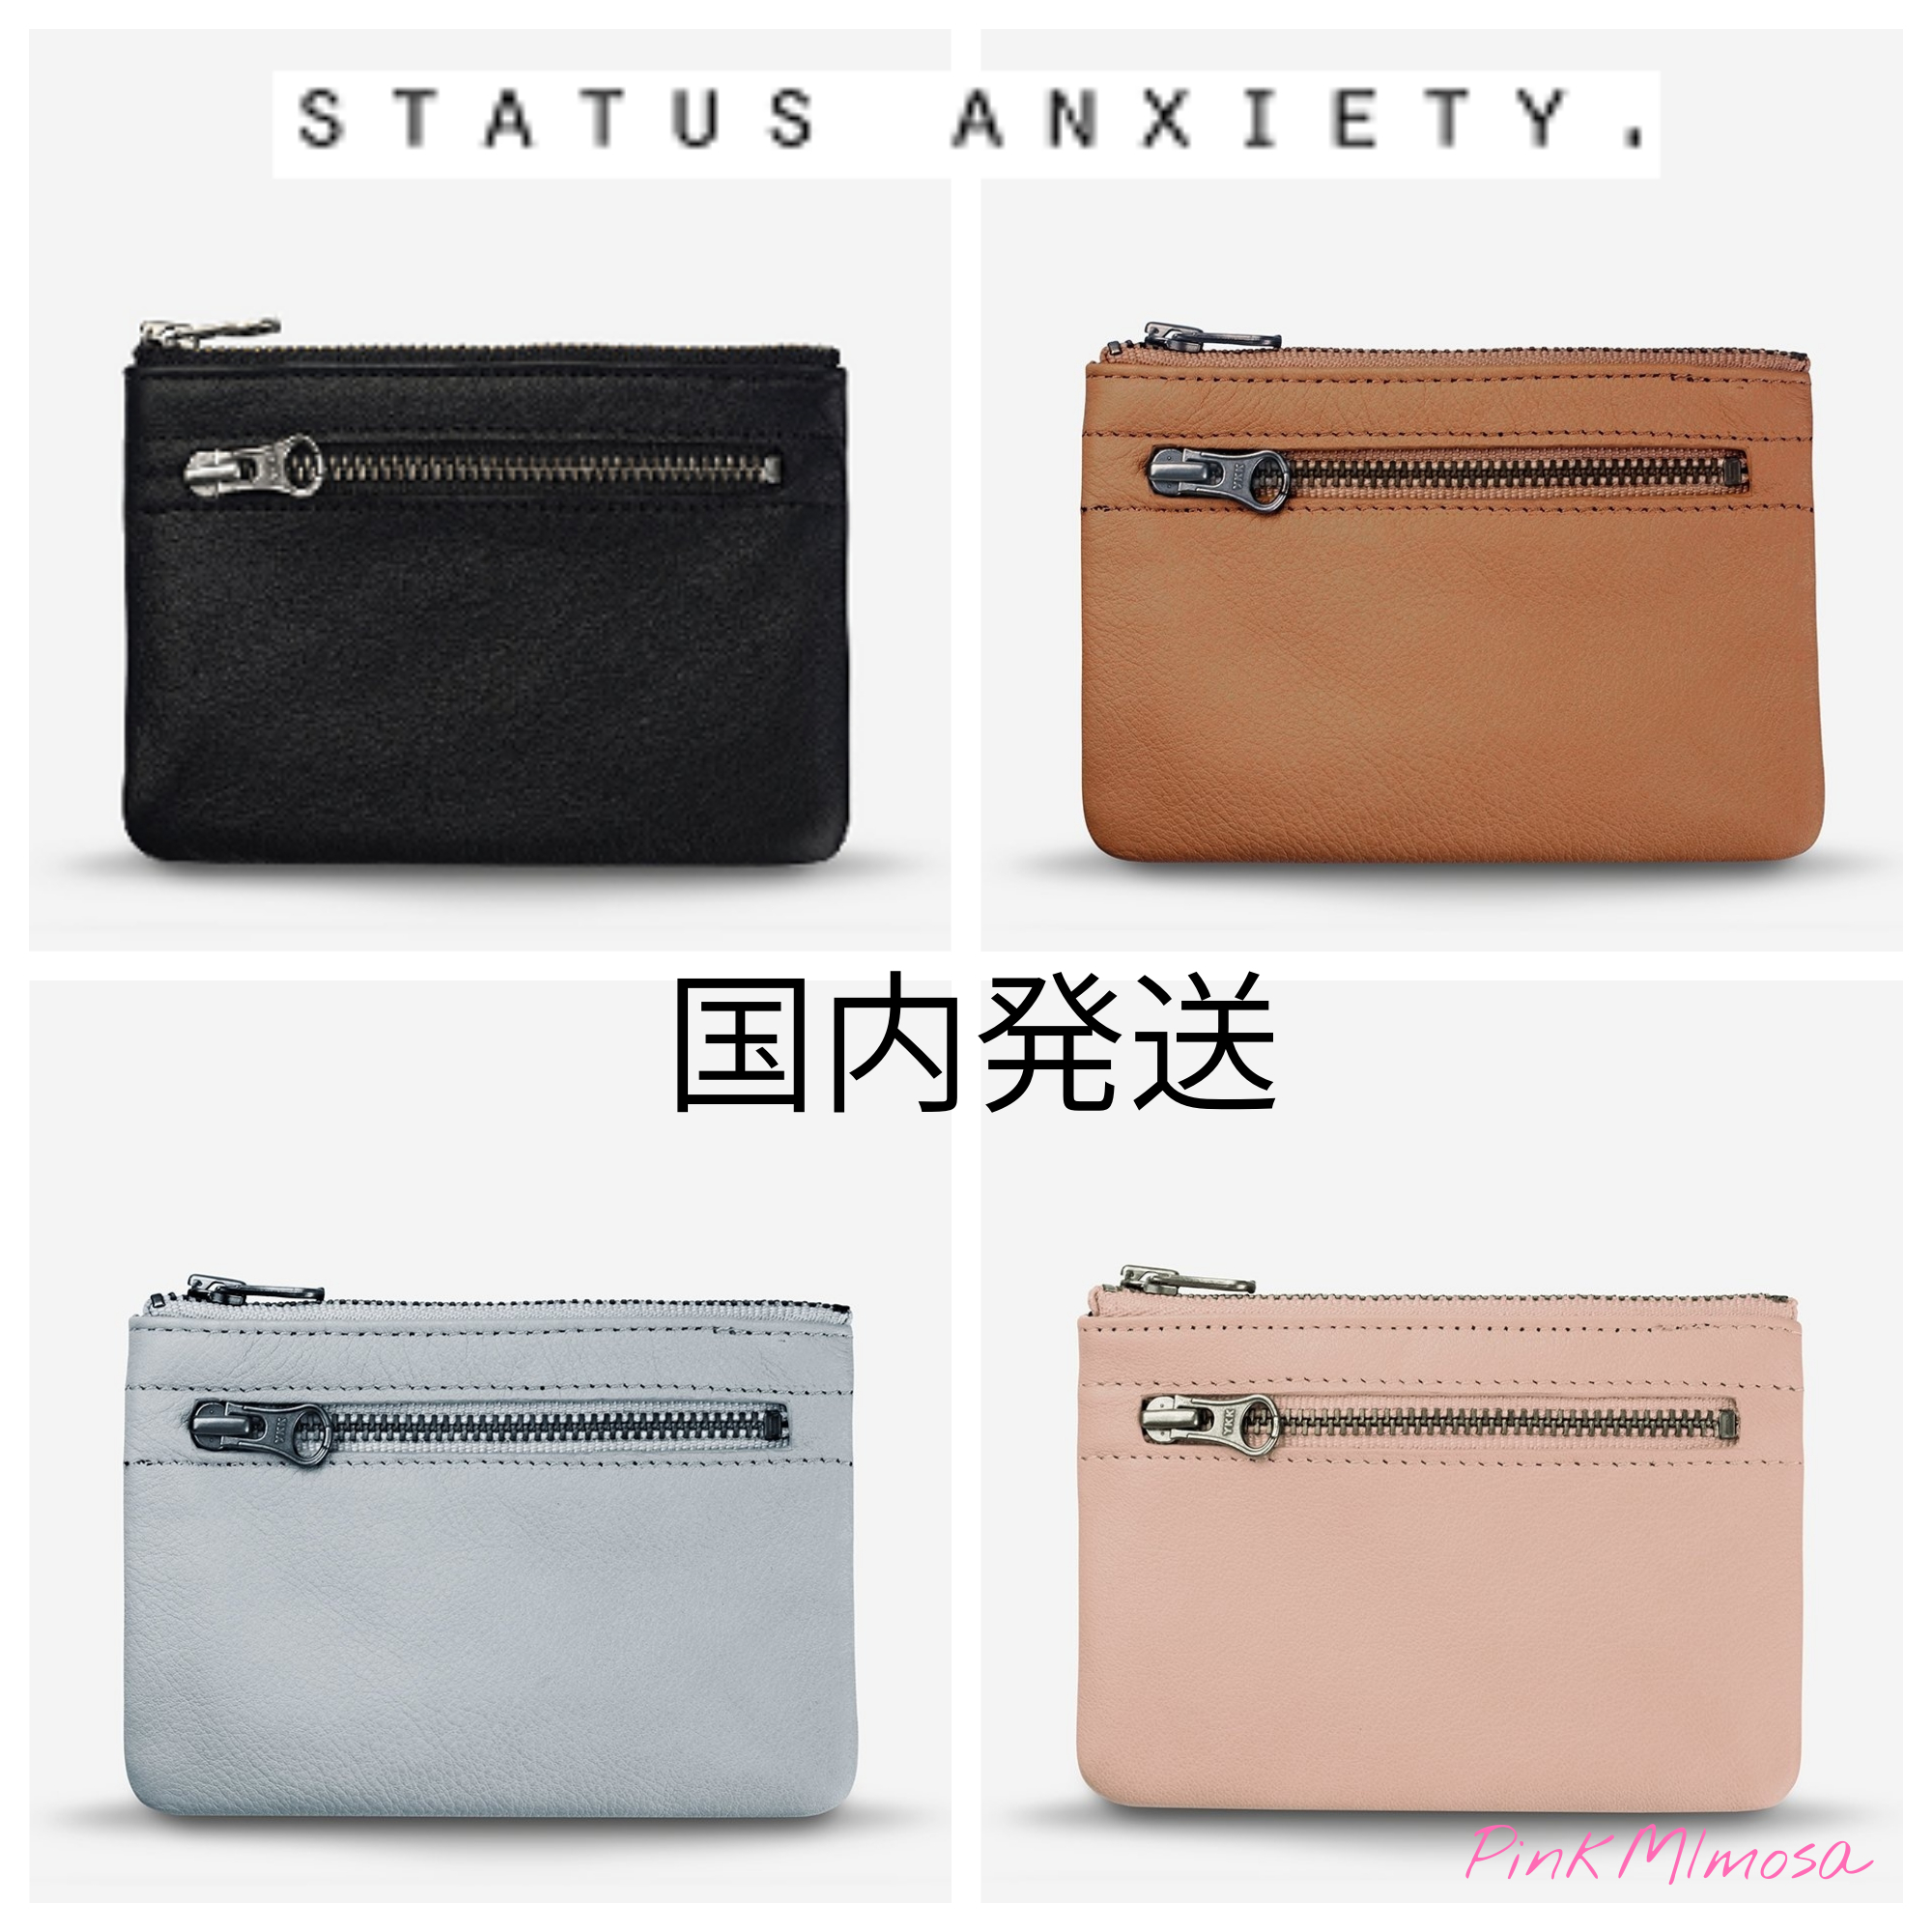 shop status anxiety accessories